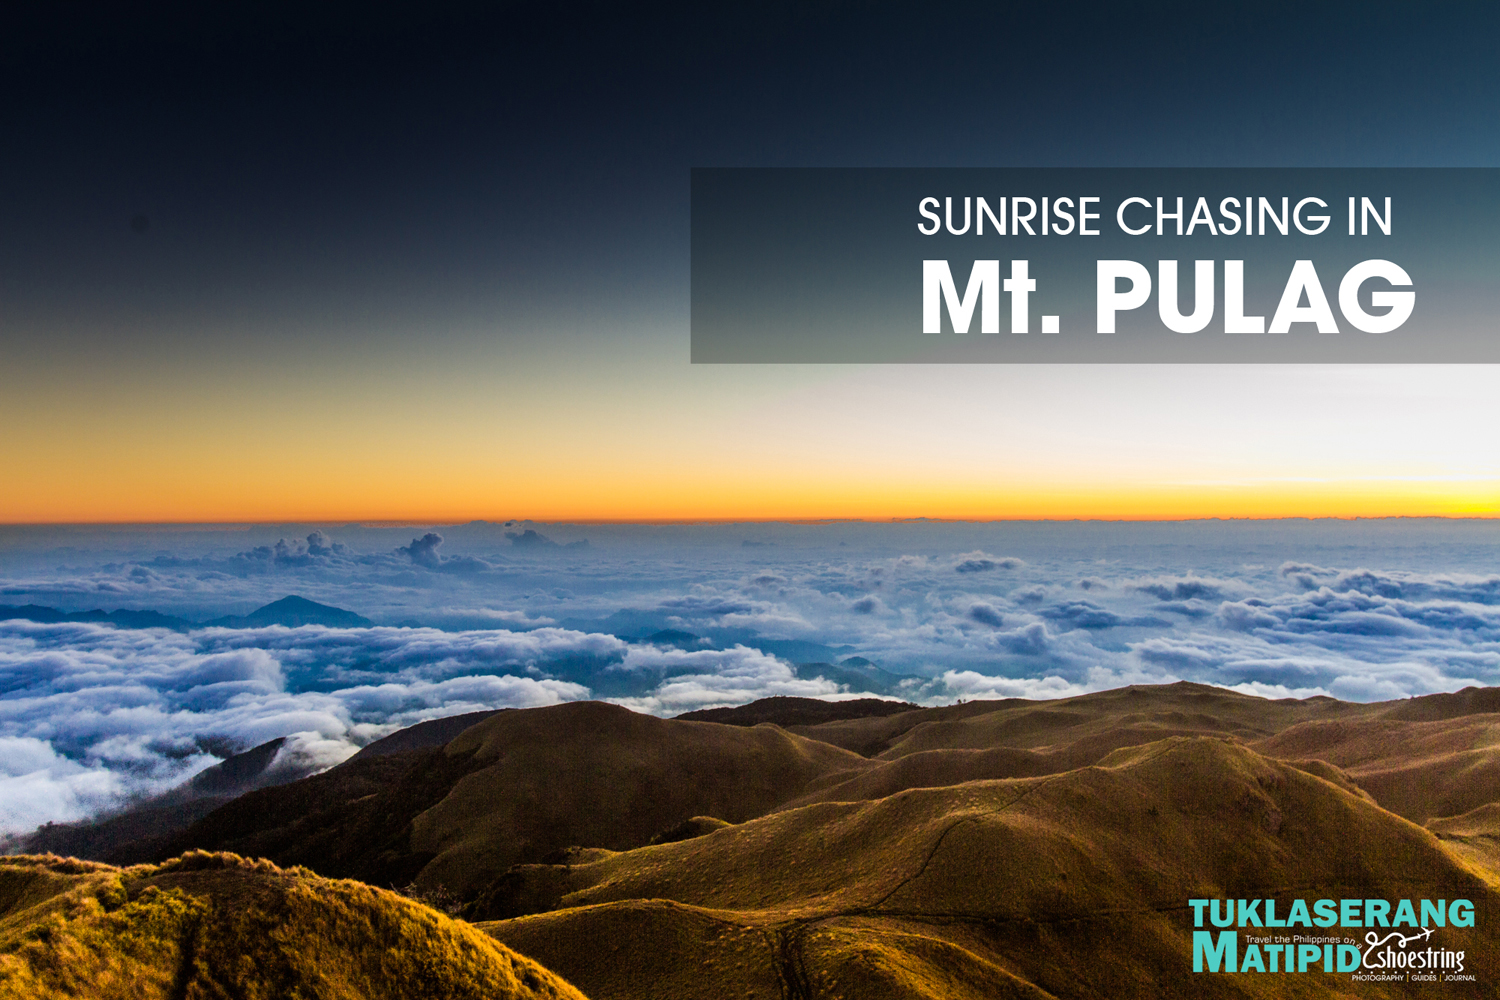 Sunrive view of Mt. Pulag